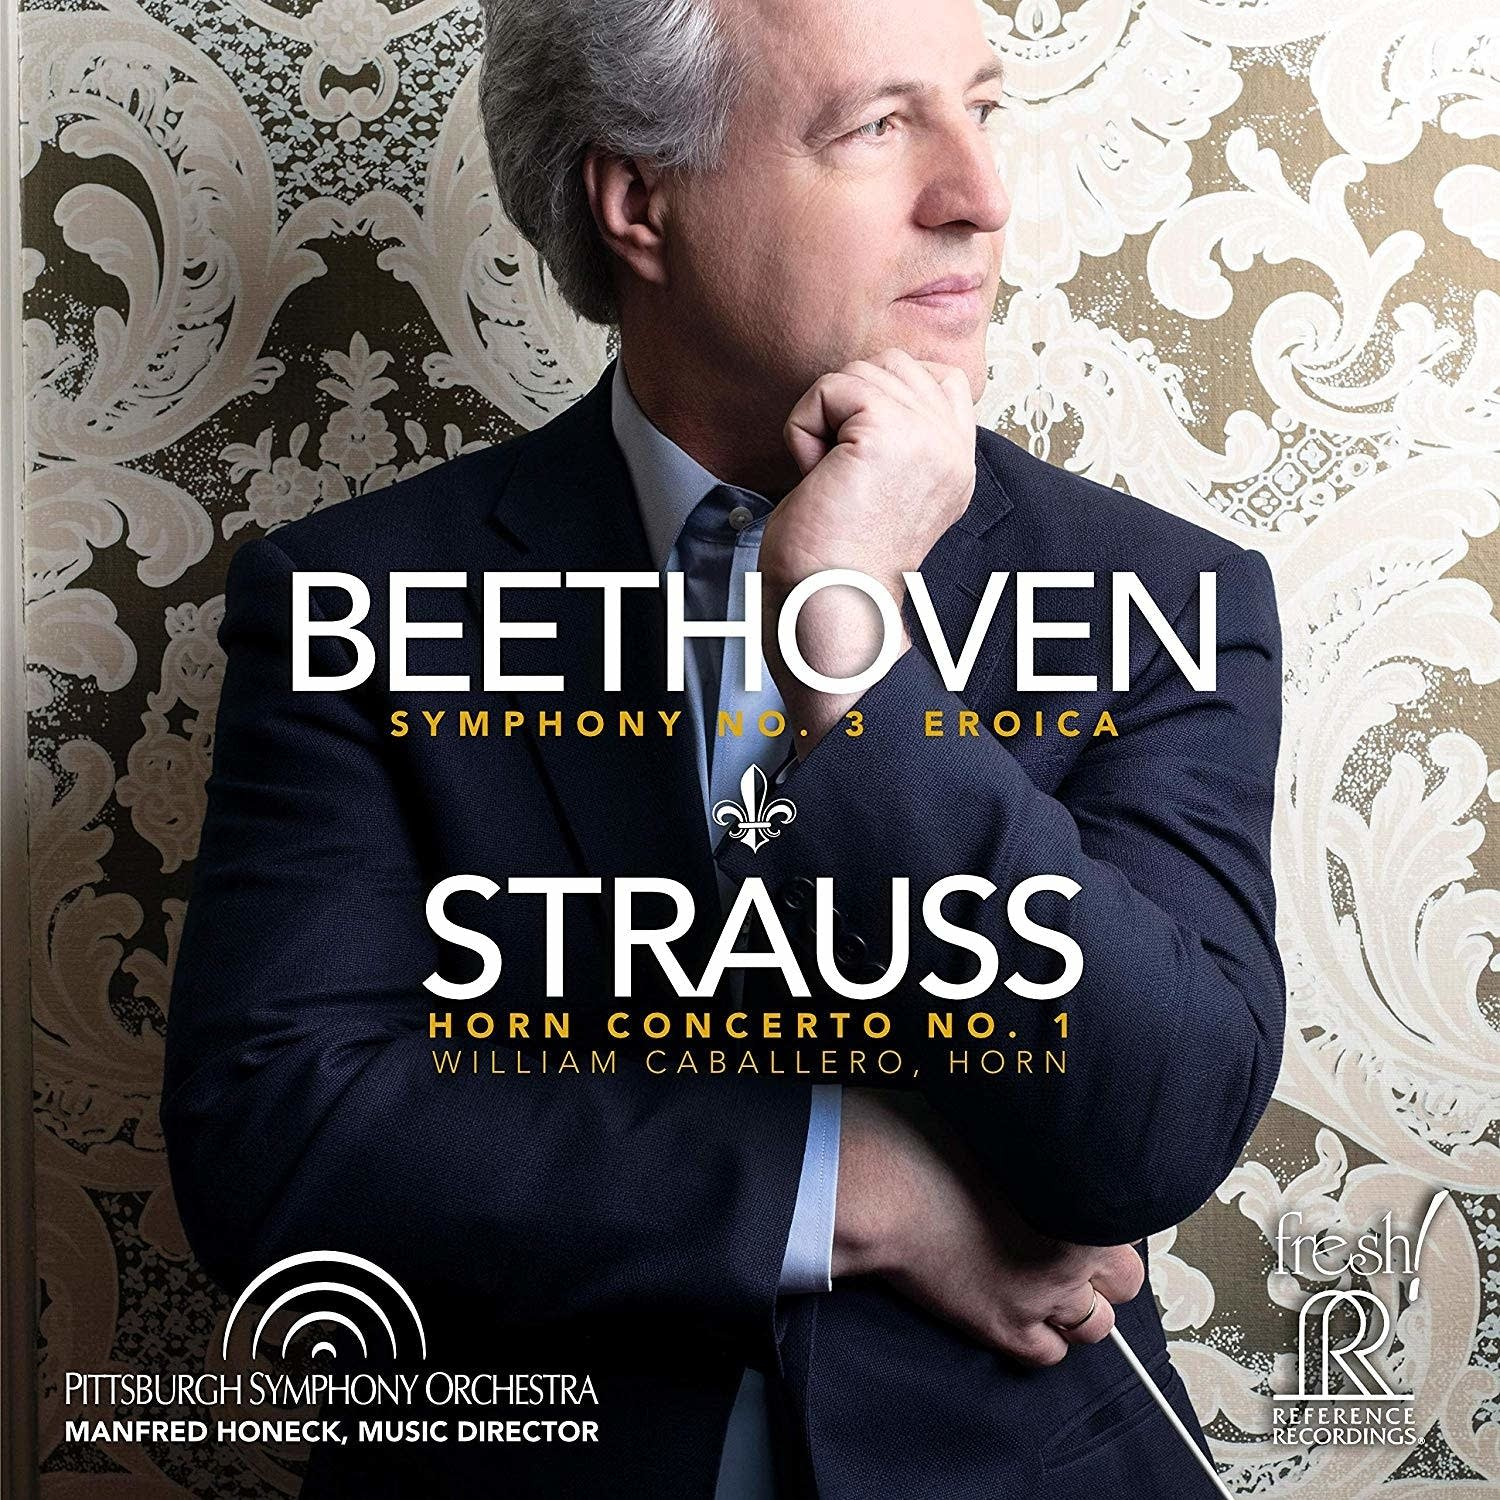 New Classical Tracks: Manfred Honeck takes a fresh look at